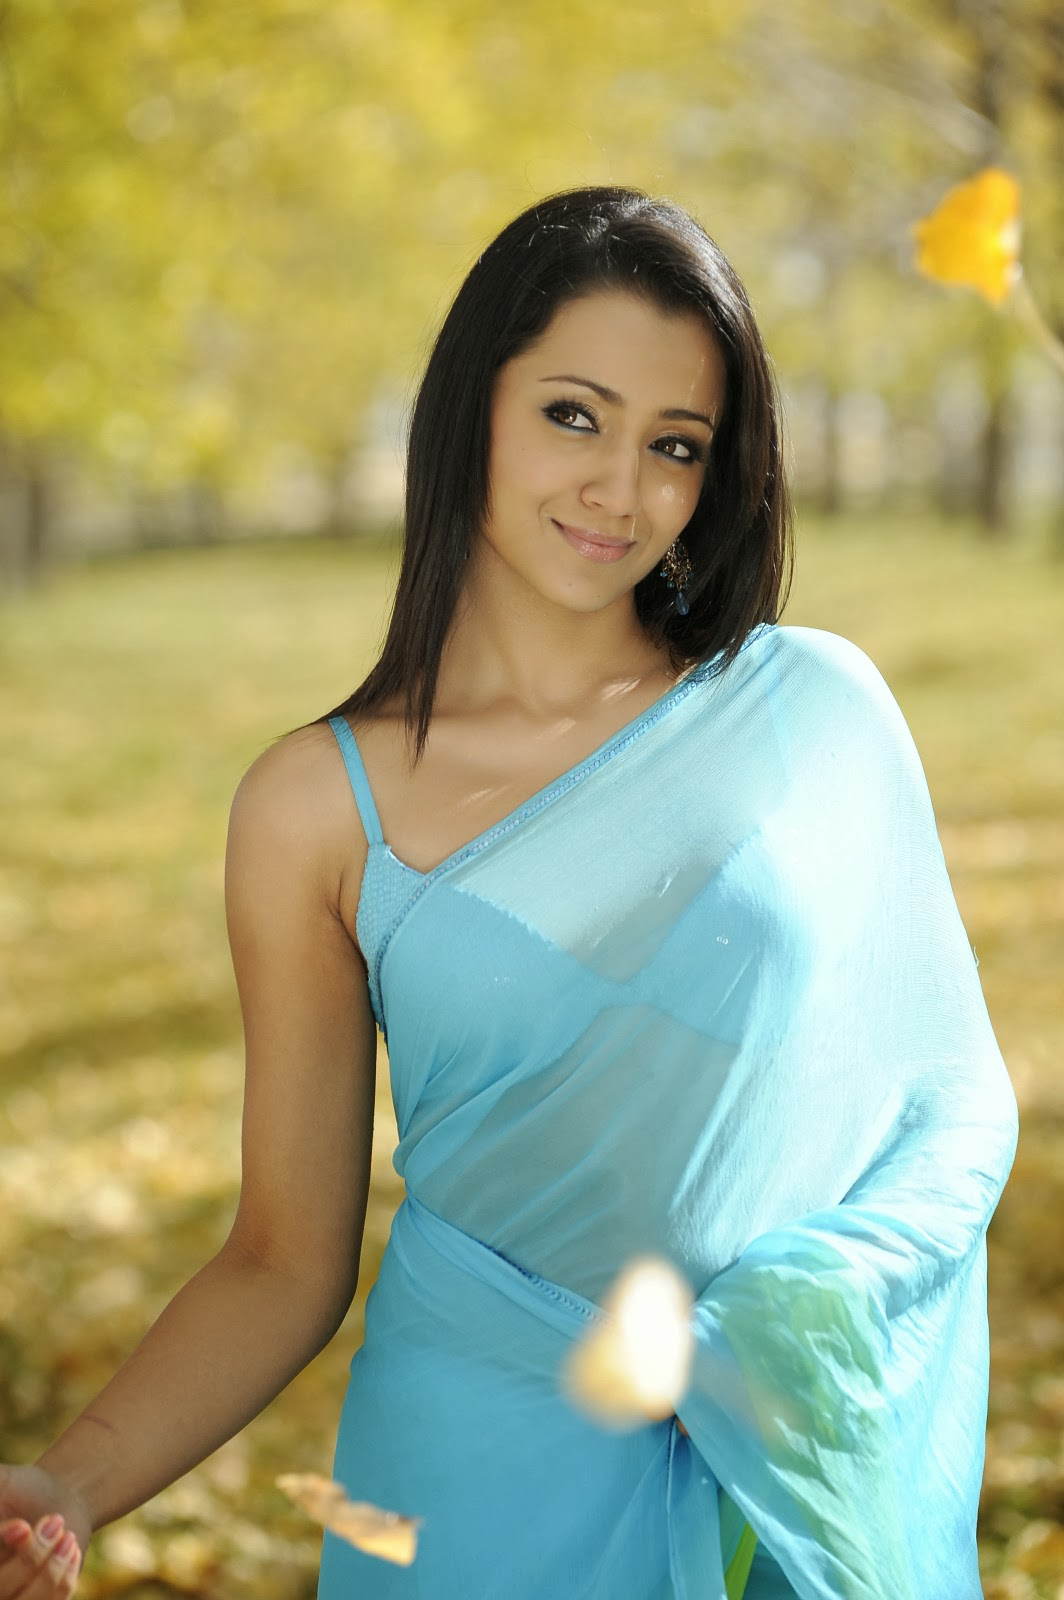 Tamil Quotes Wallpaper Hd Actress Trisha Hot Photos And Hd Wallpapers Collections